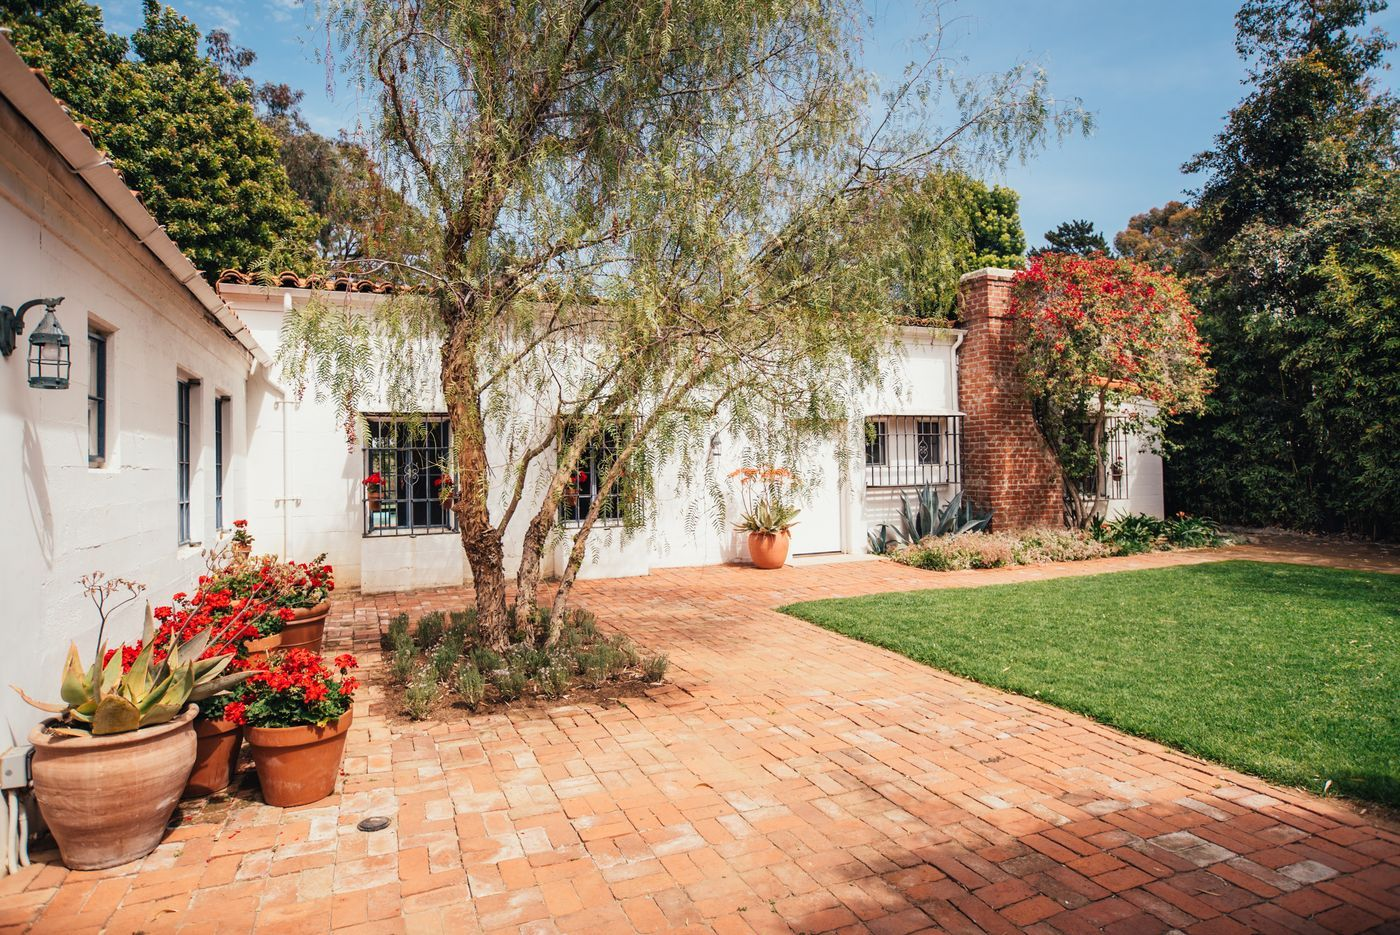 Marilyn Monroe S Brentwood House Is For Sale For 6 9m Marilyn